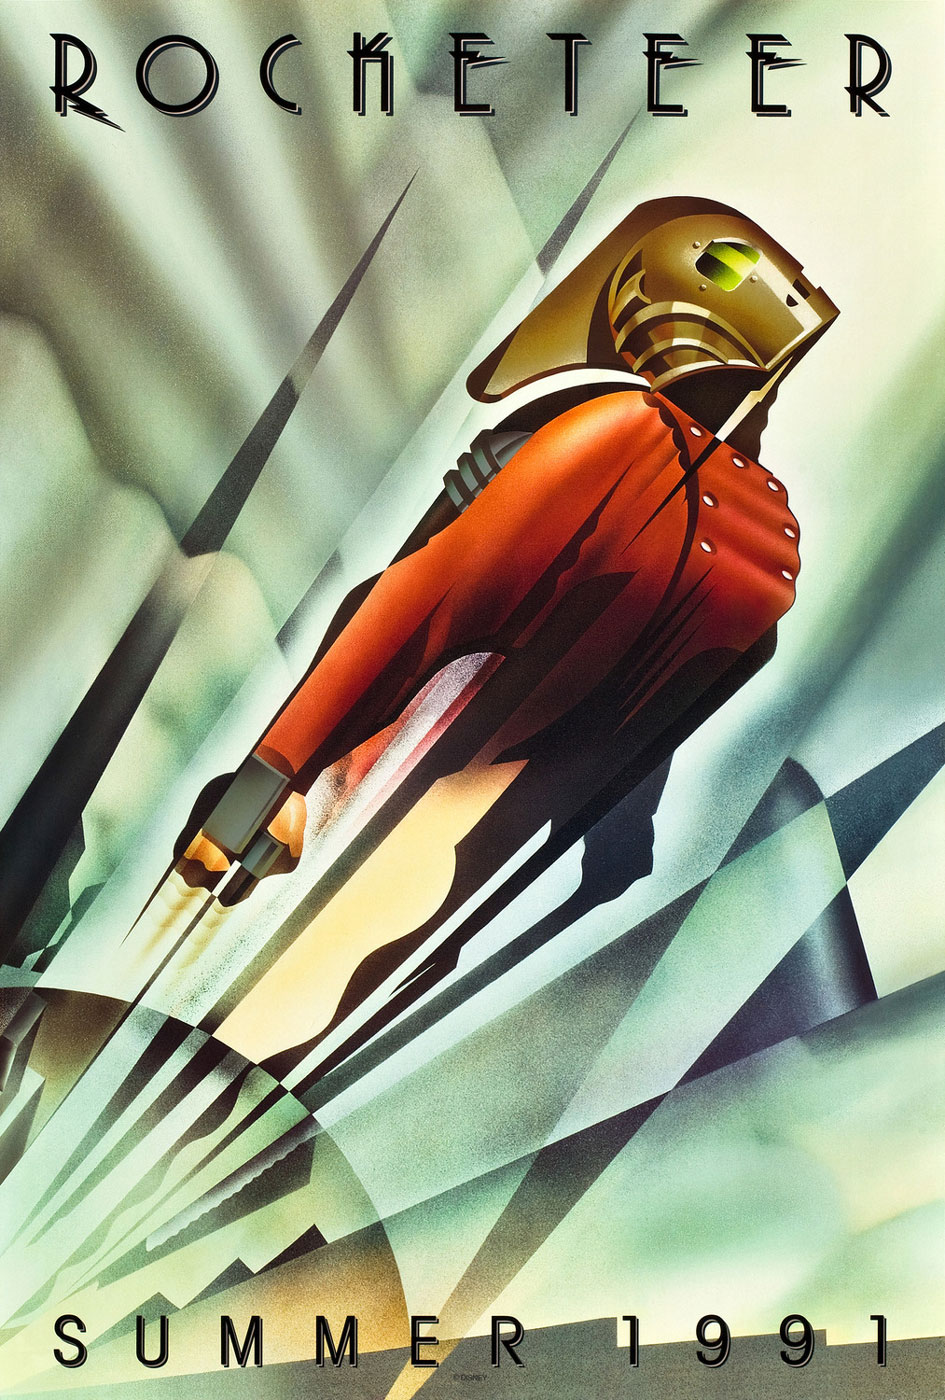 The Rocketeer - Joe Johnston (1991)